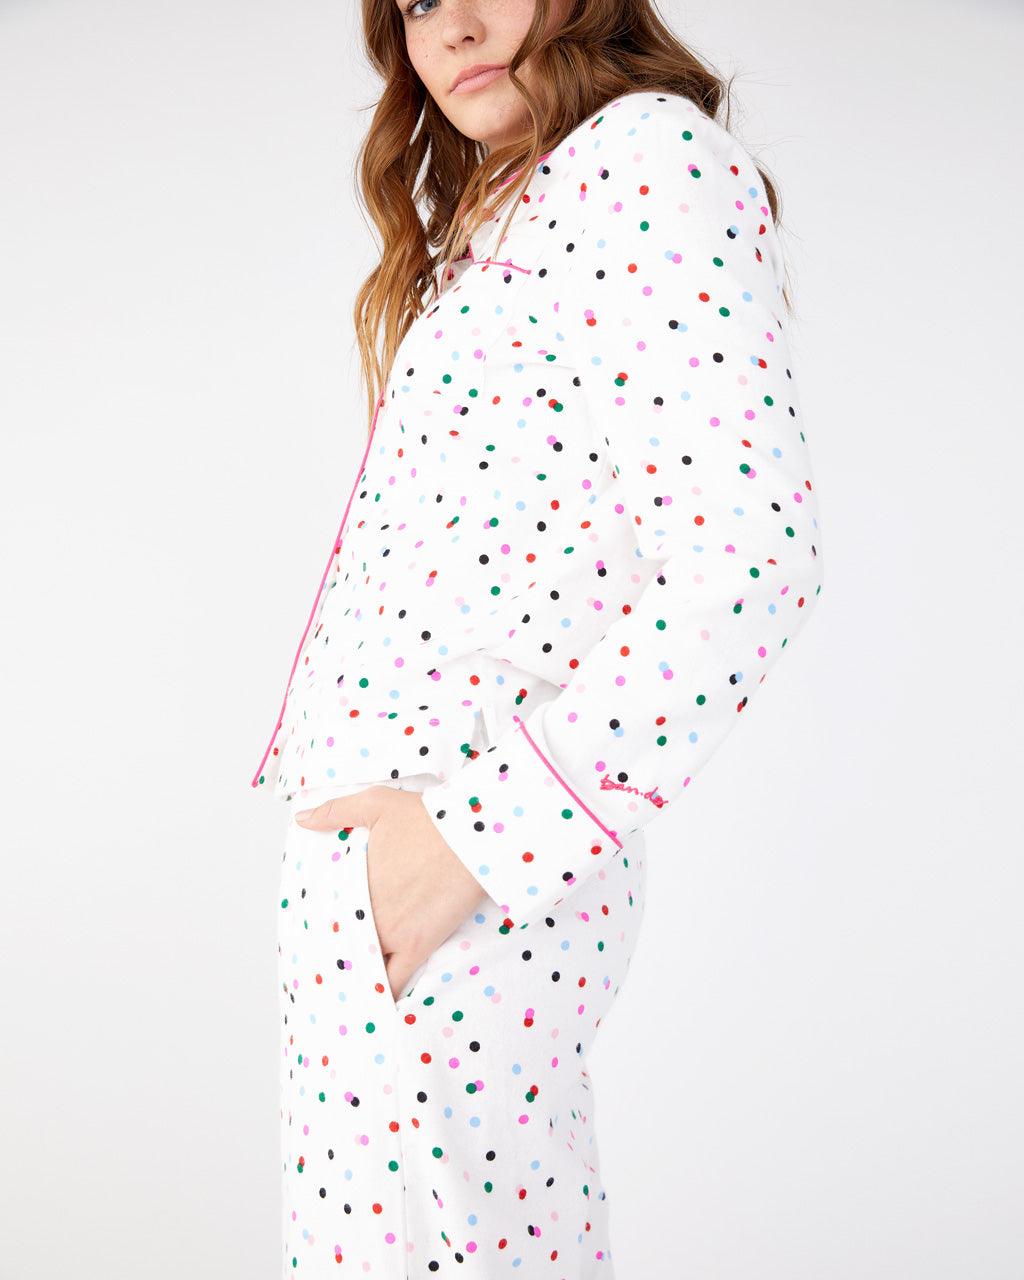 Flannel pajama pants with allover multi-color polka dot print and pink drawstring tie.